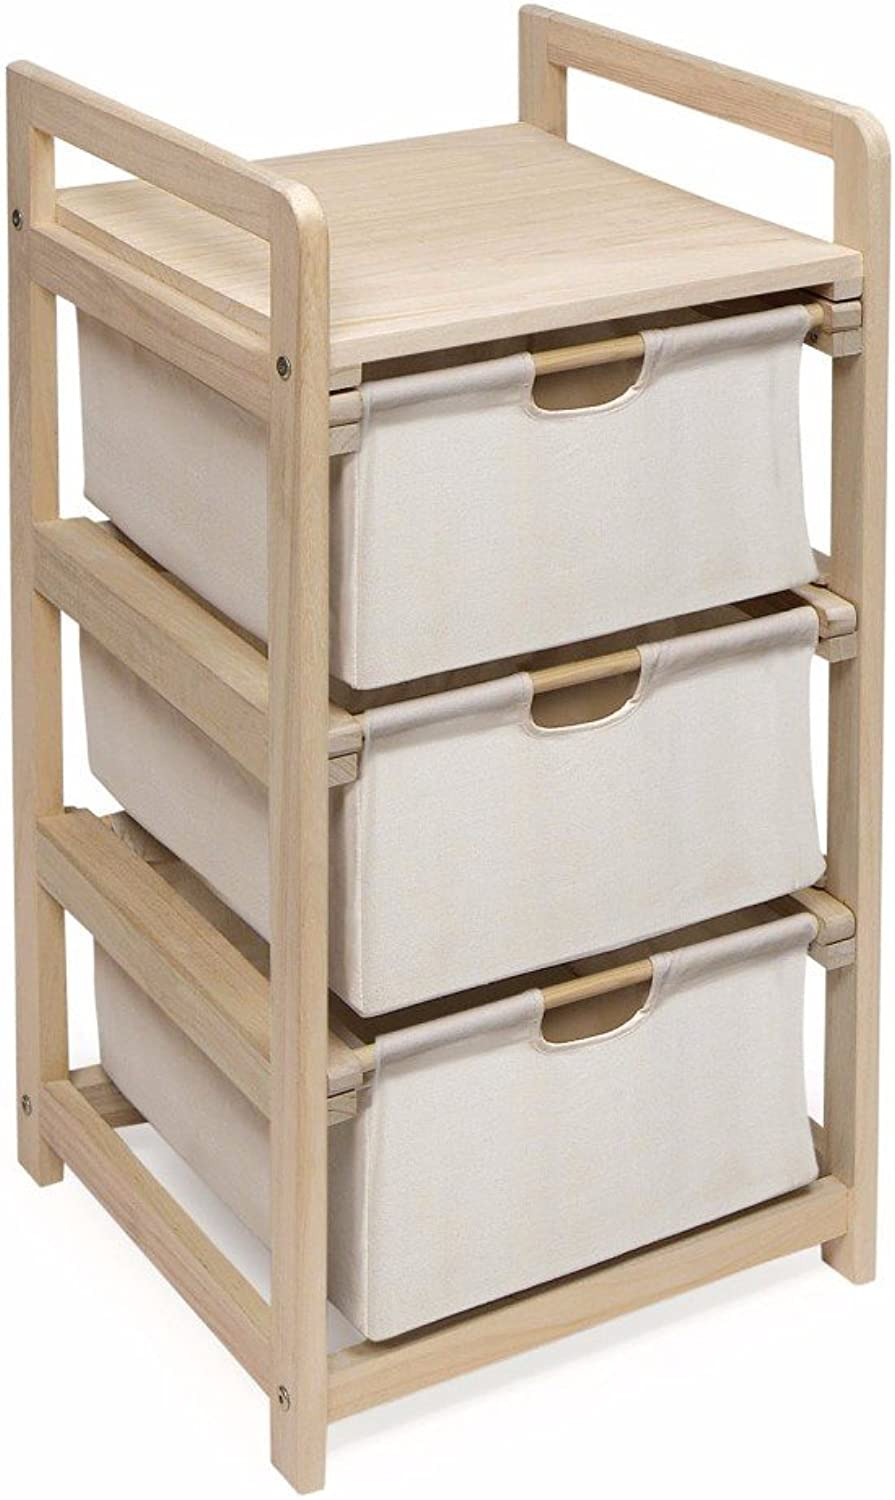 Wooden Hamper Storage Organizing Unit with 3 Cloth Drawers